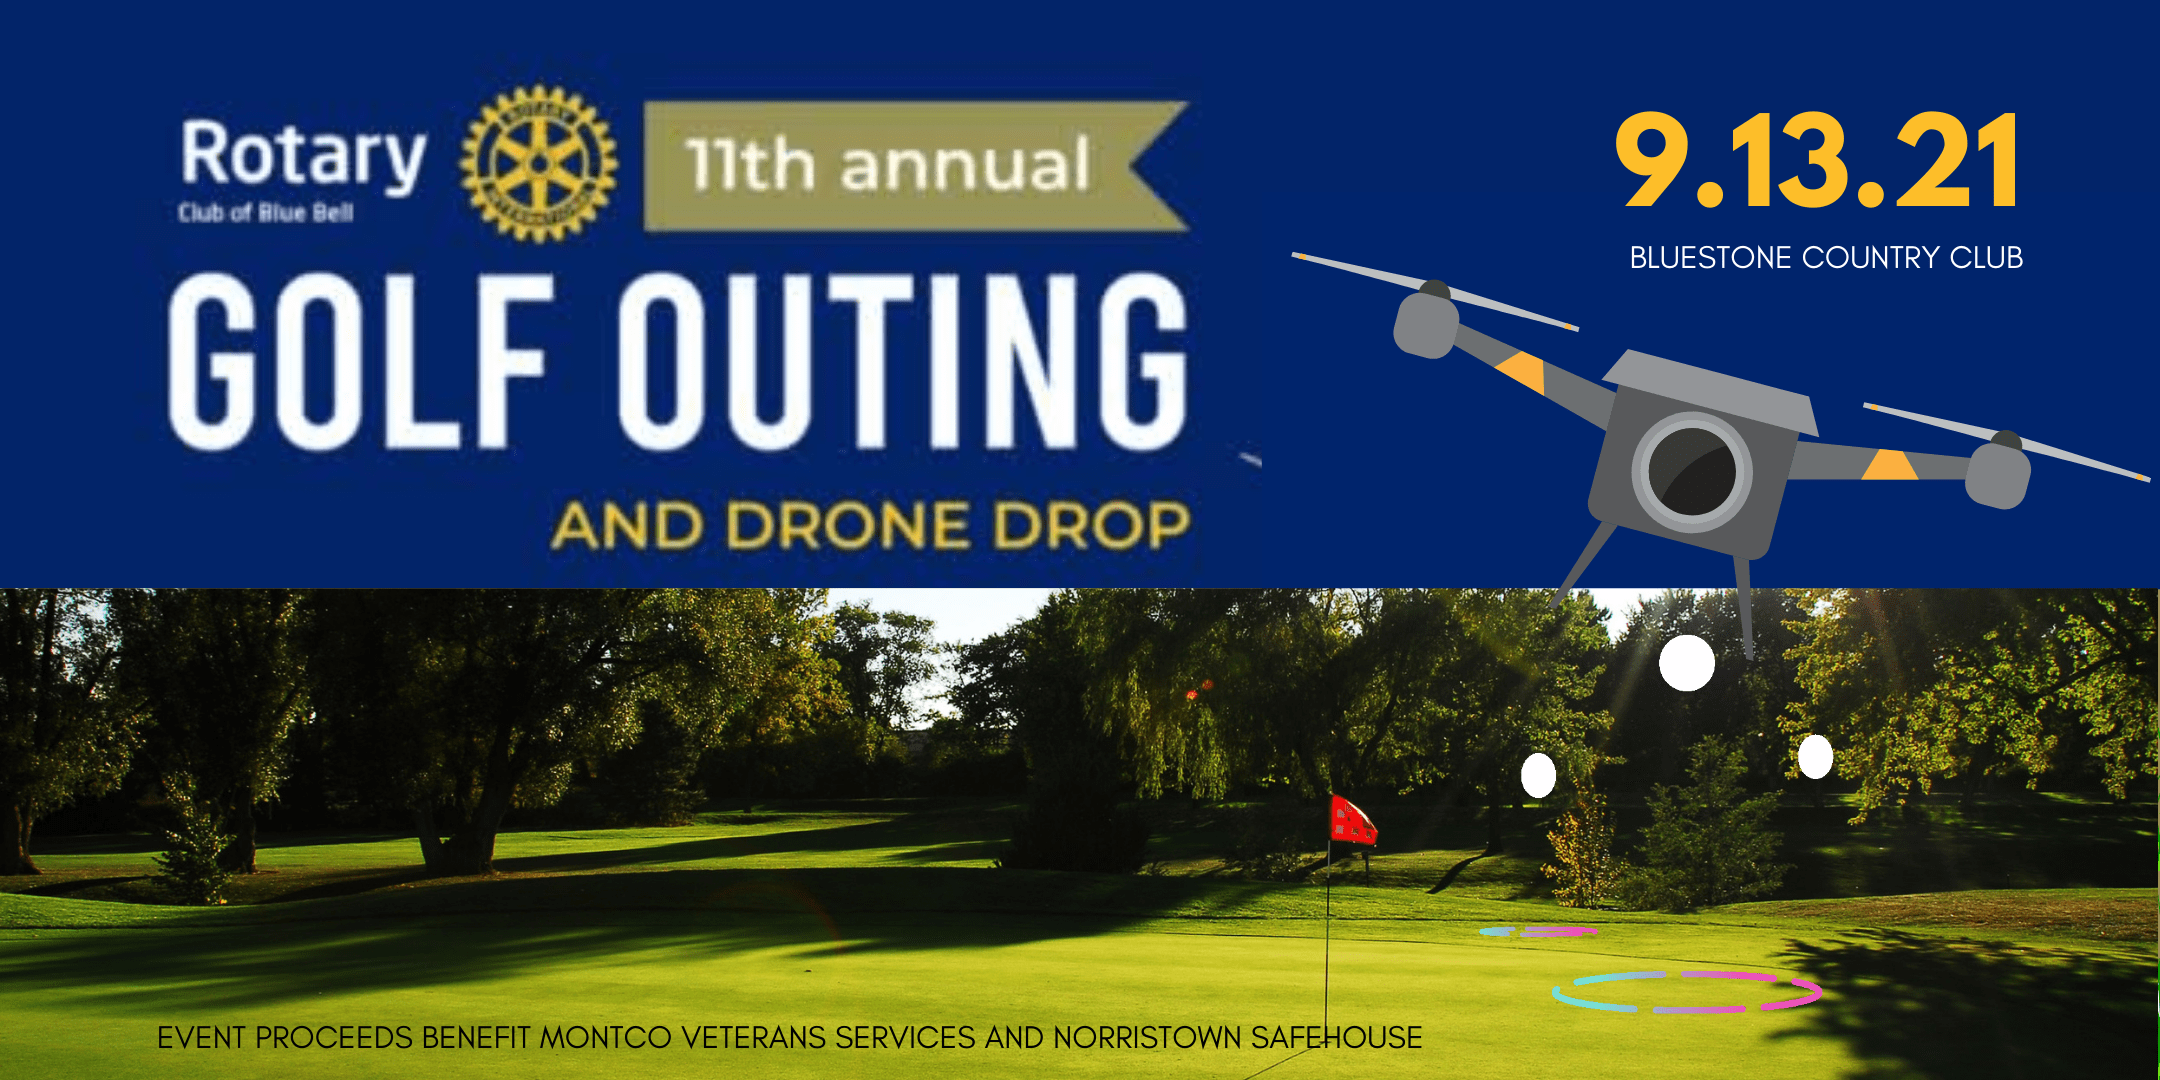 Blue Bell Rotary Annual Golf Outing and Drone Ball Drop